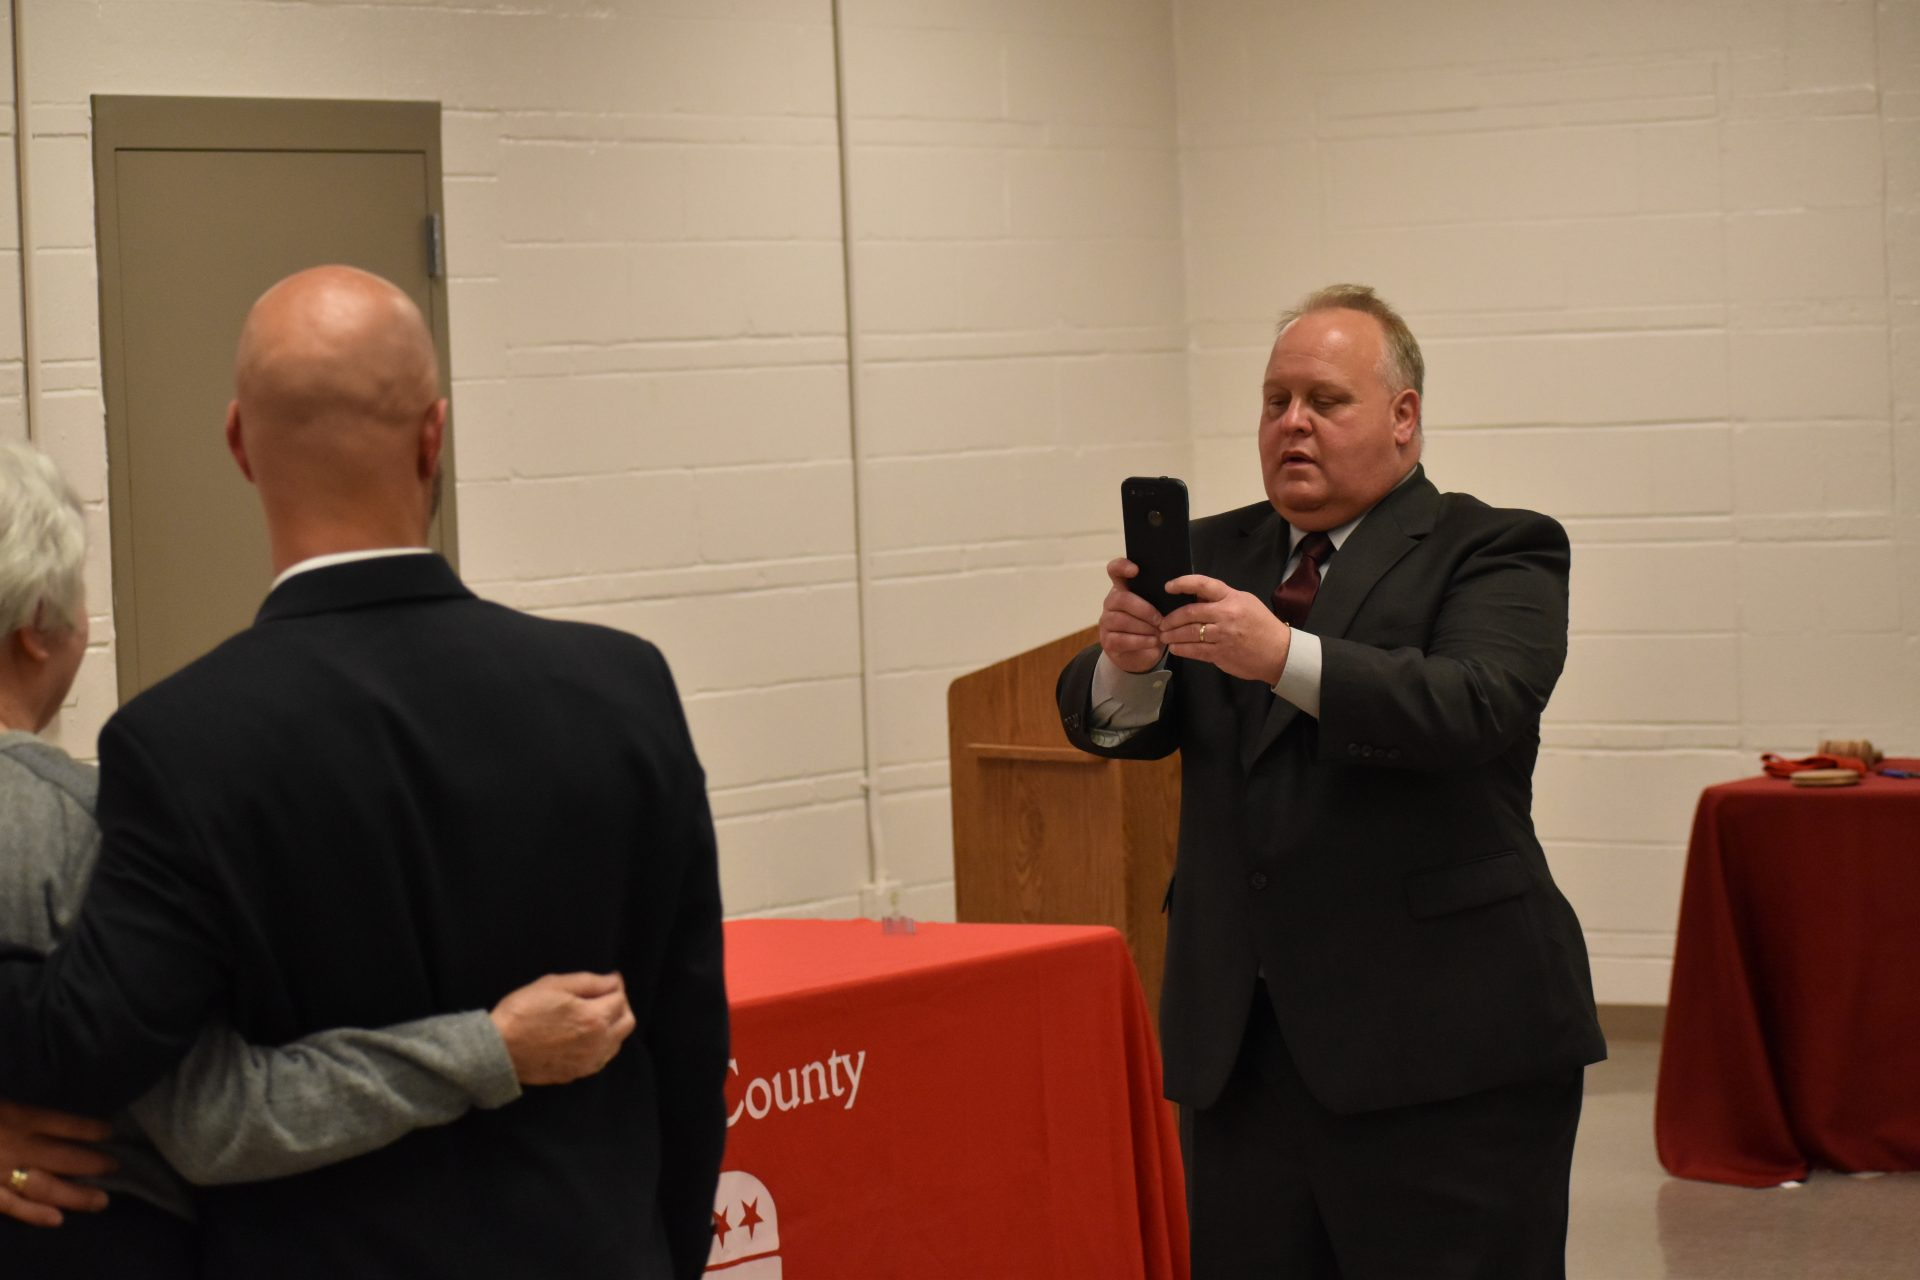 Republican commissioner candidate Ron Smith takes a picture for people who attended a debate on April 29, 2019, at Shiloh Fire Company in York County.